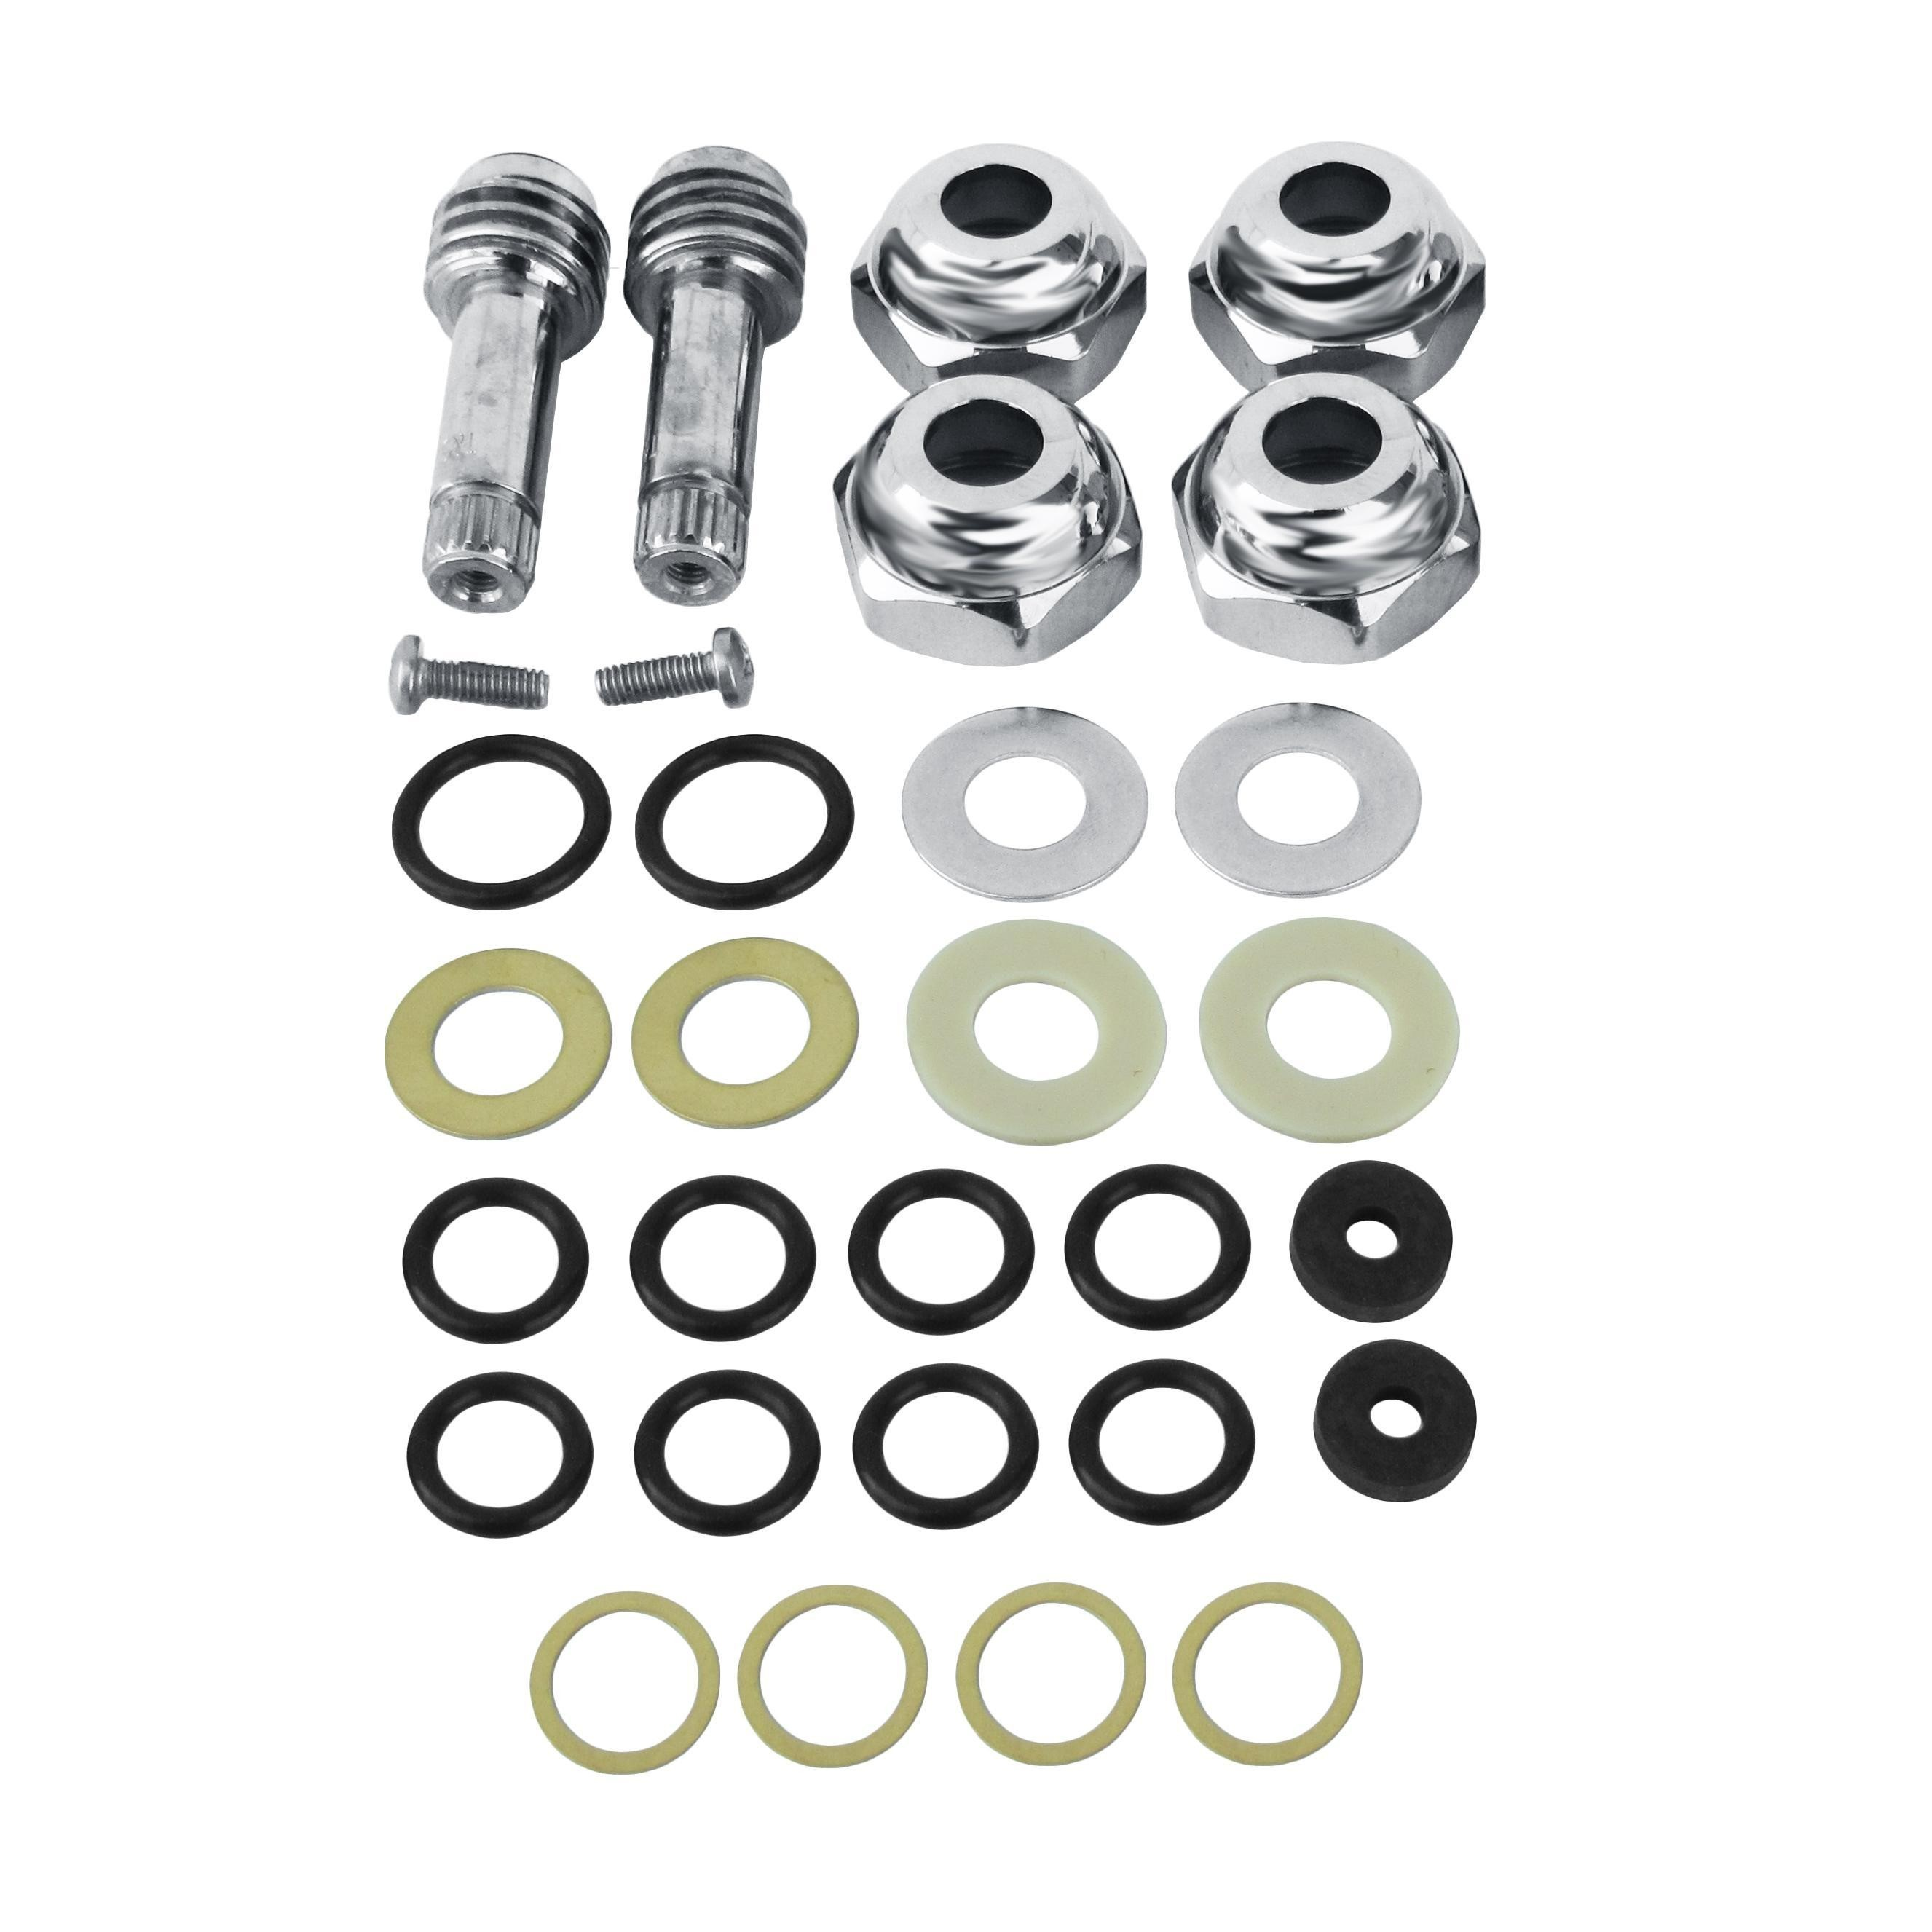 Parts Kit for T & S faucet B-1100 - Metro Supply & Equipment Co.